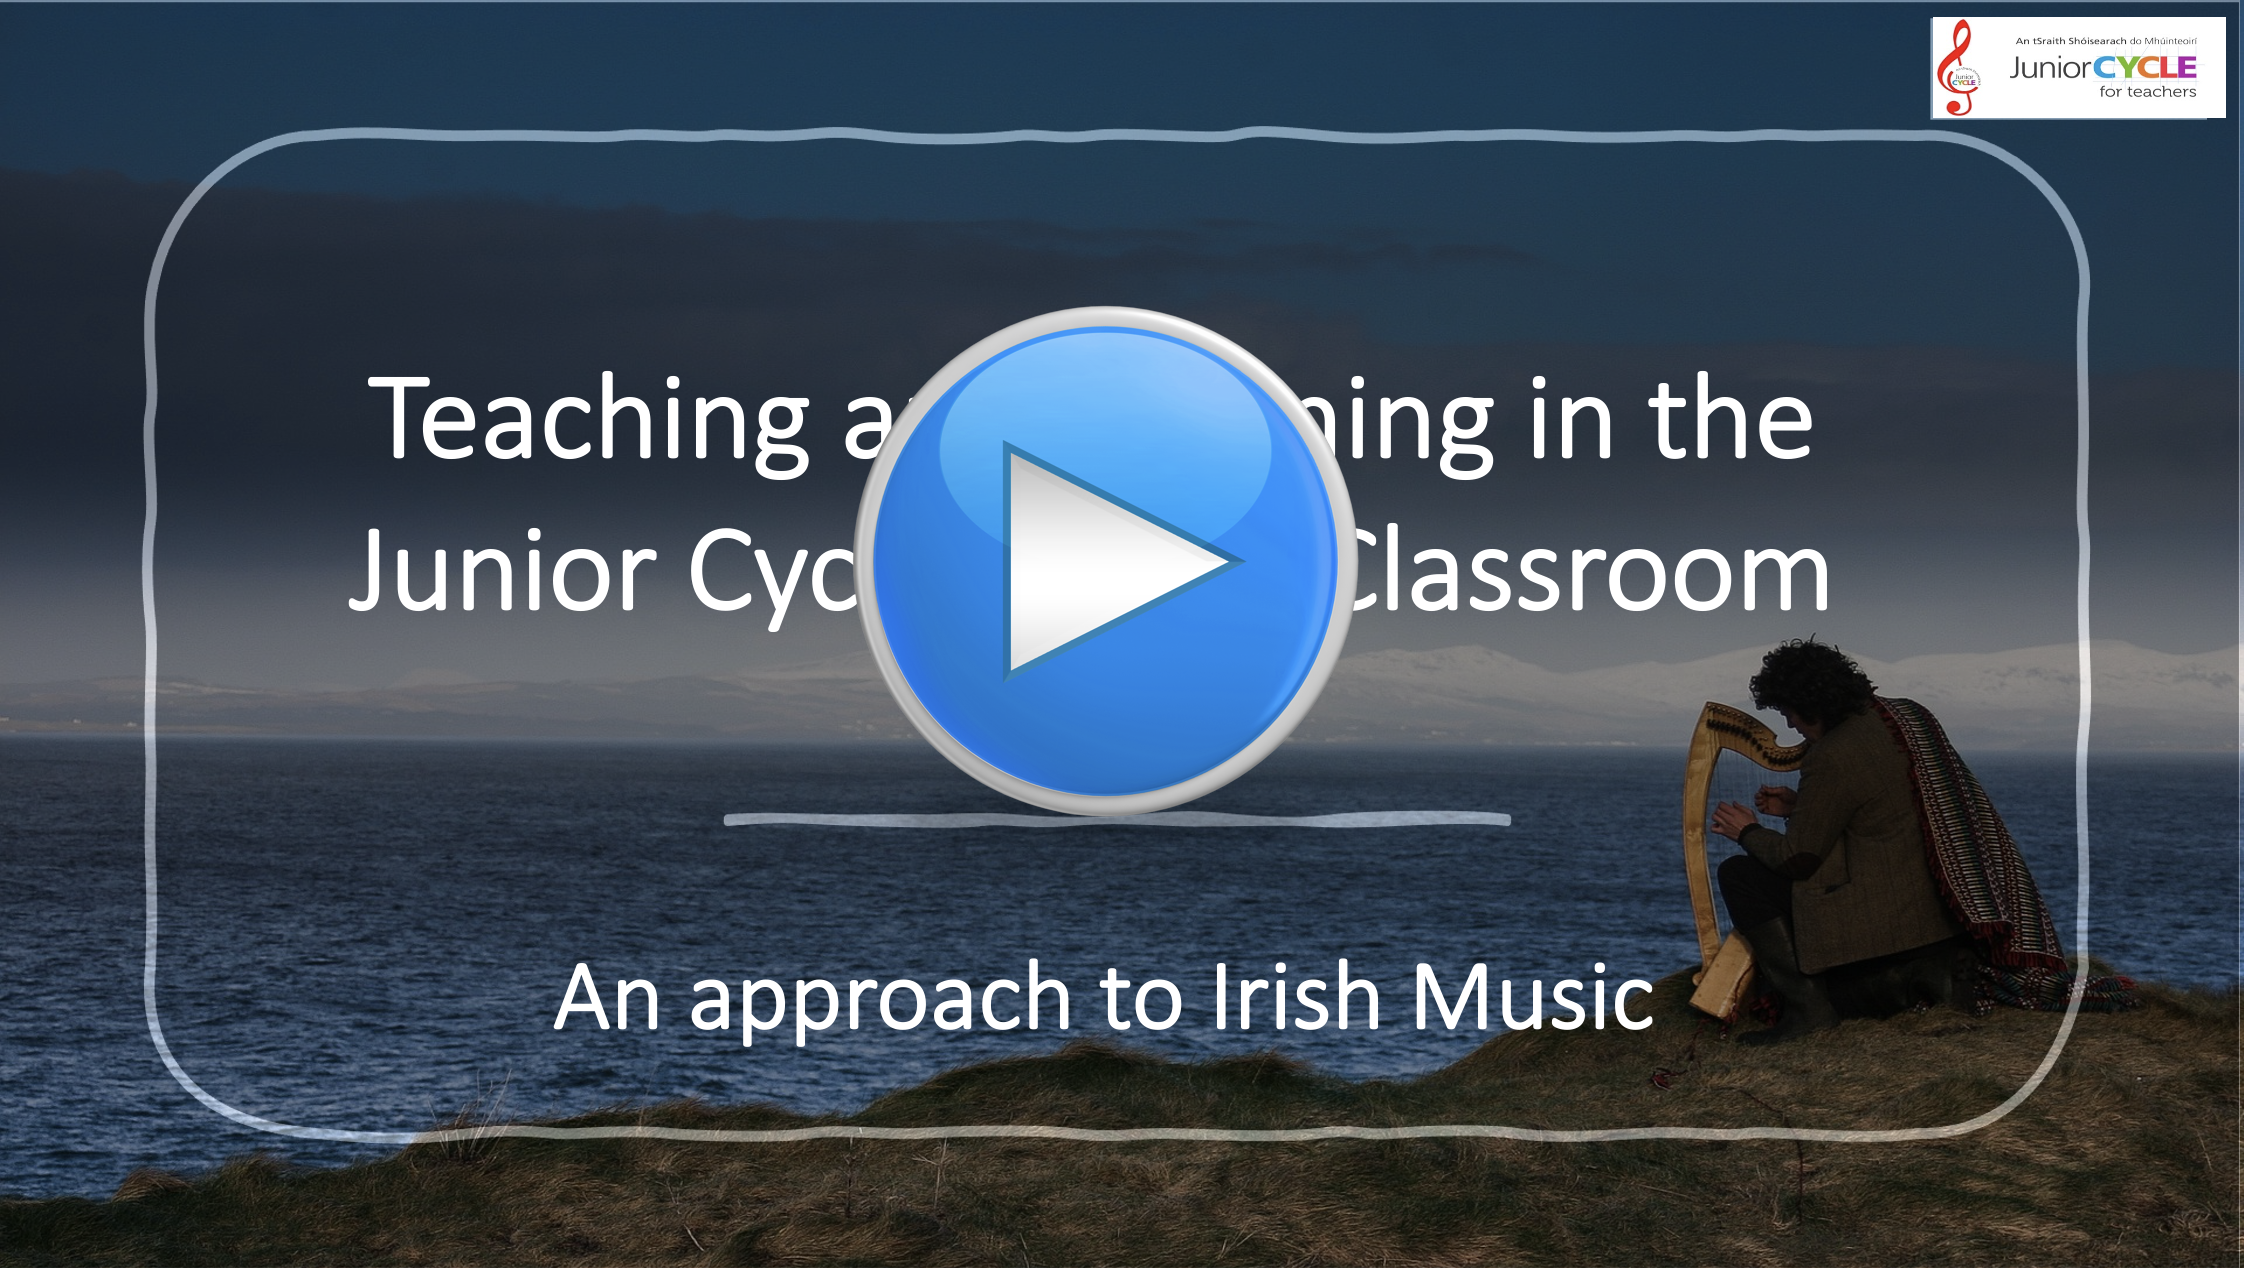 Online Learning - An Approach to Irish Music